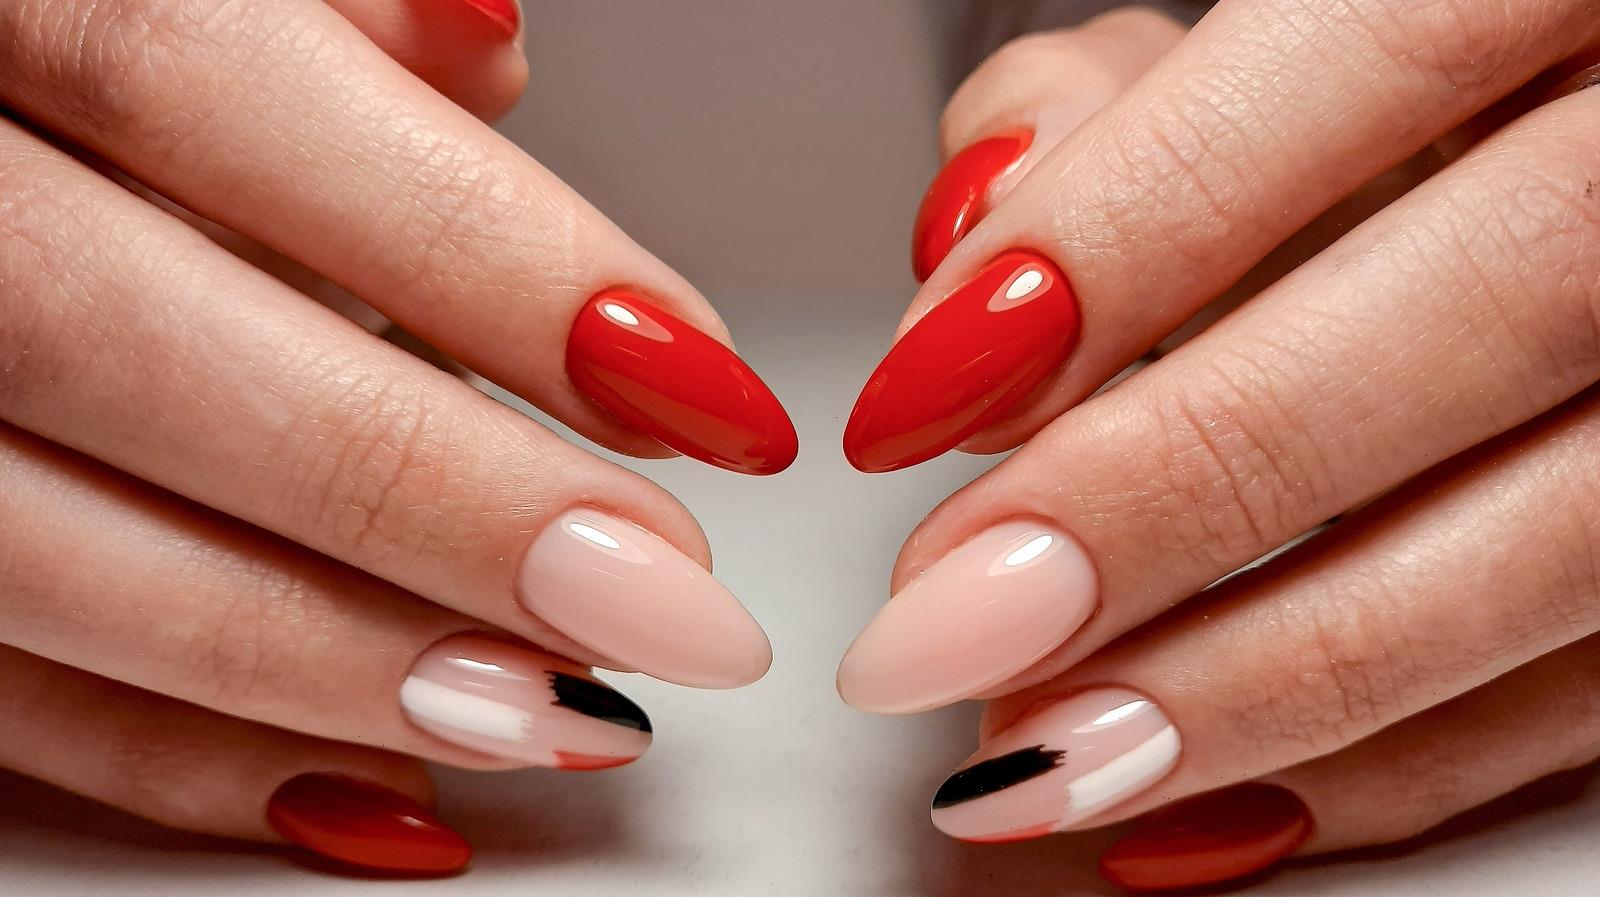 The Summer Nail Trend You Need To Know Before Your Next Manicure